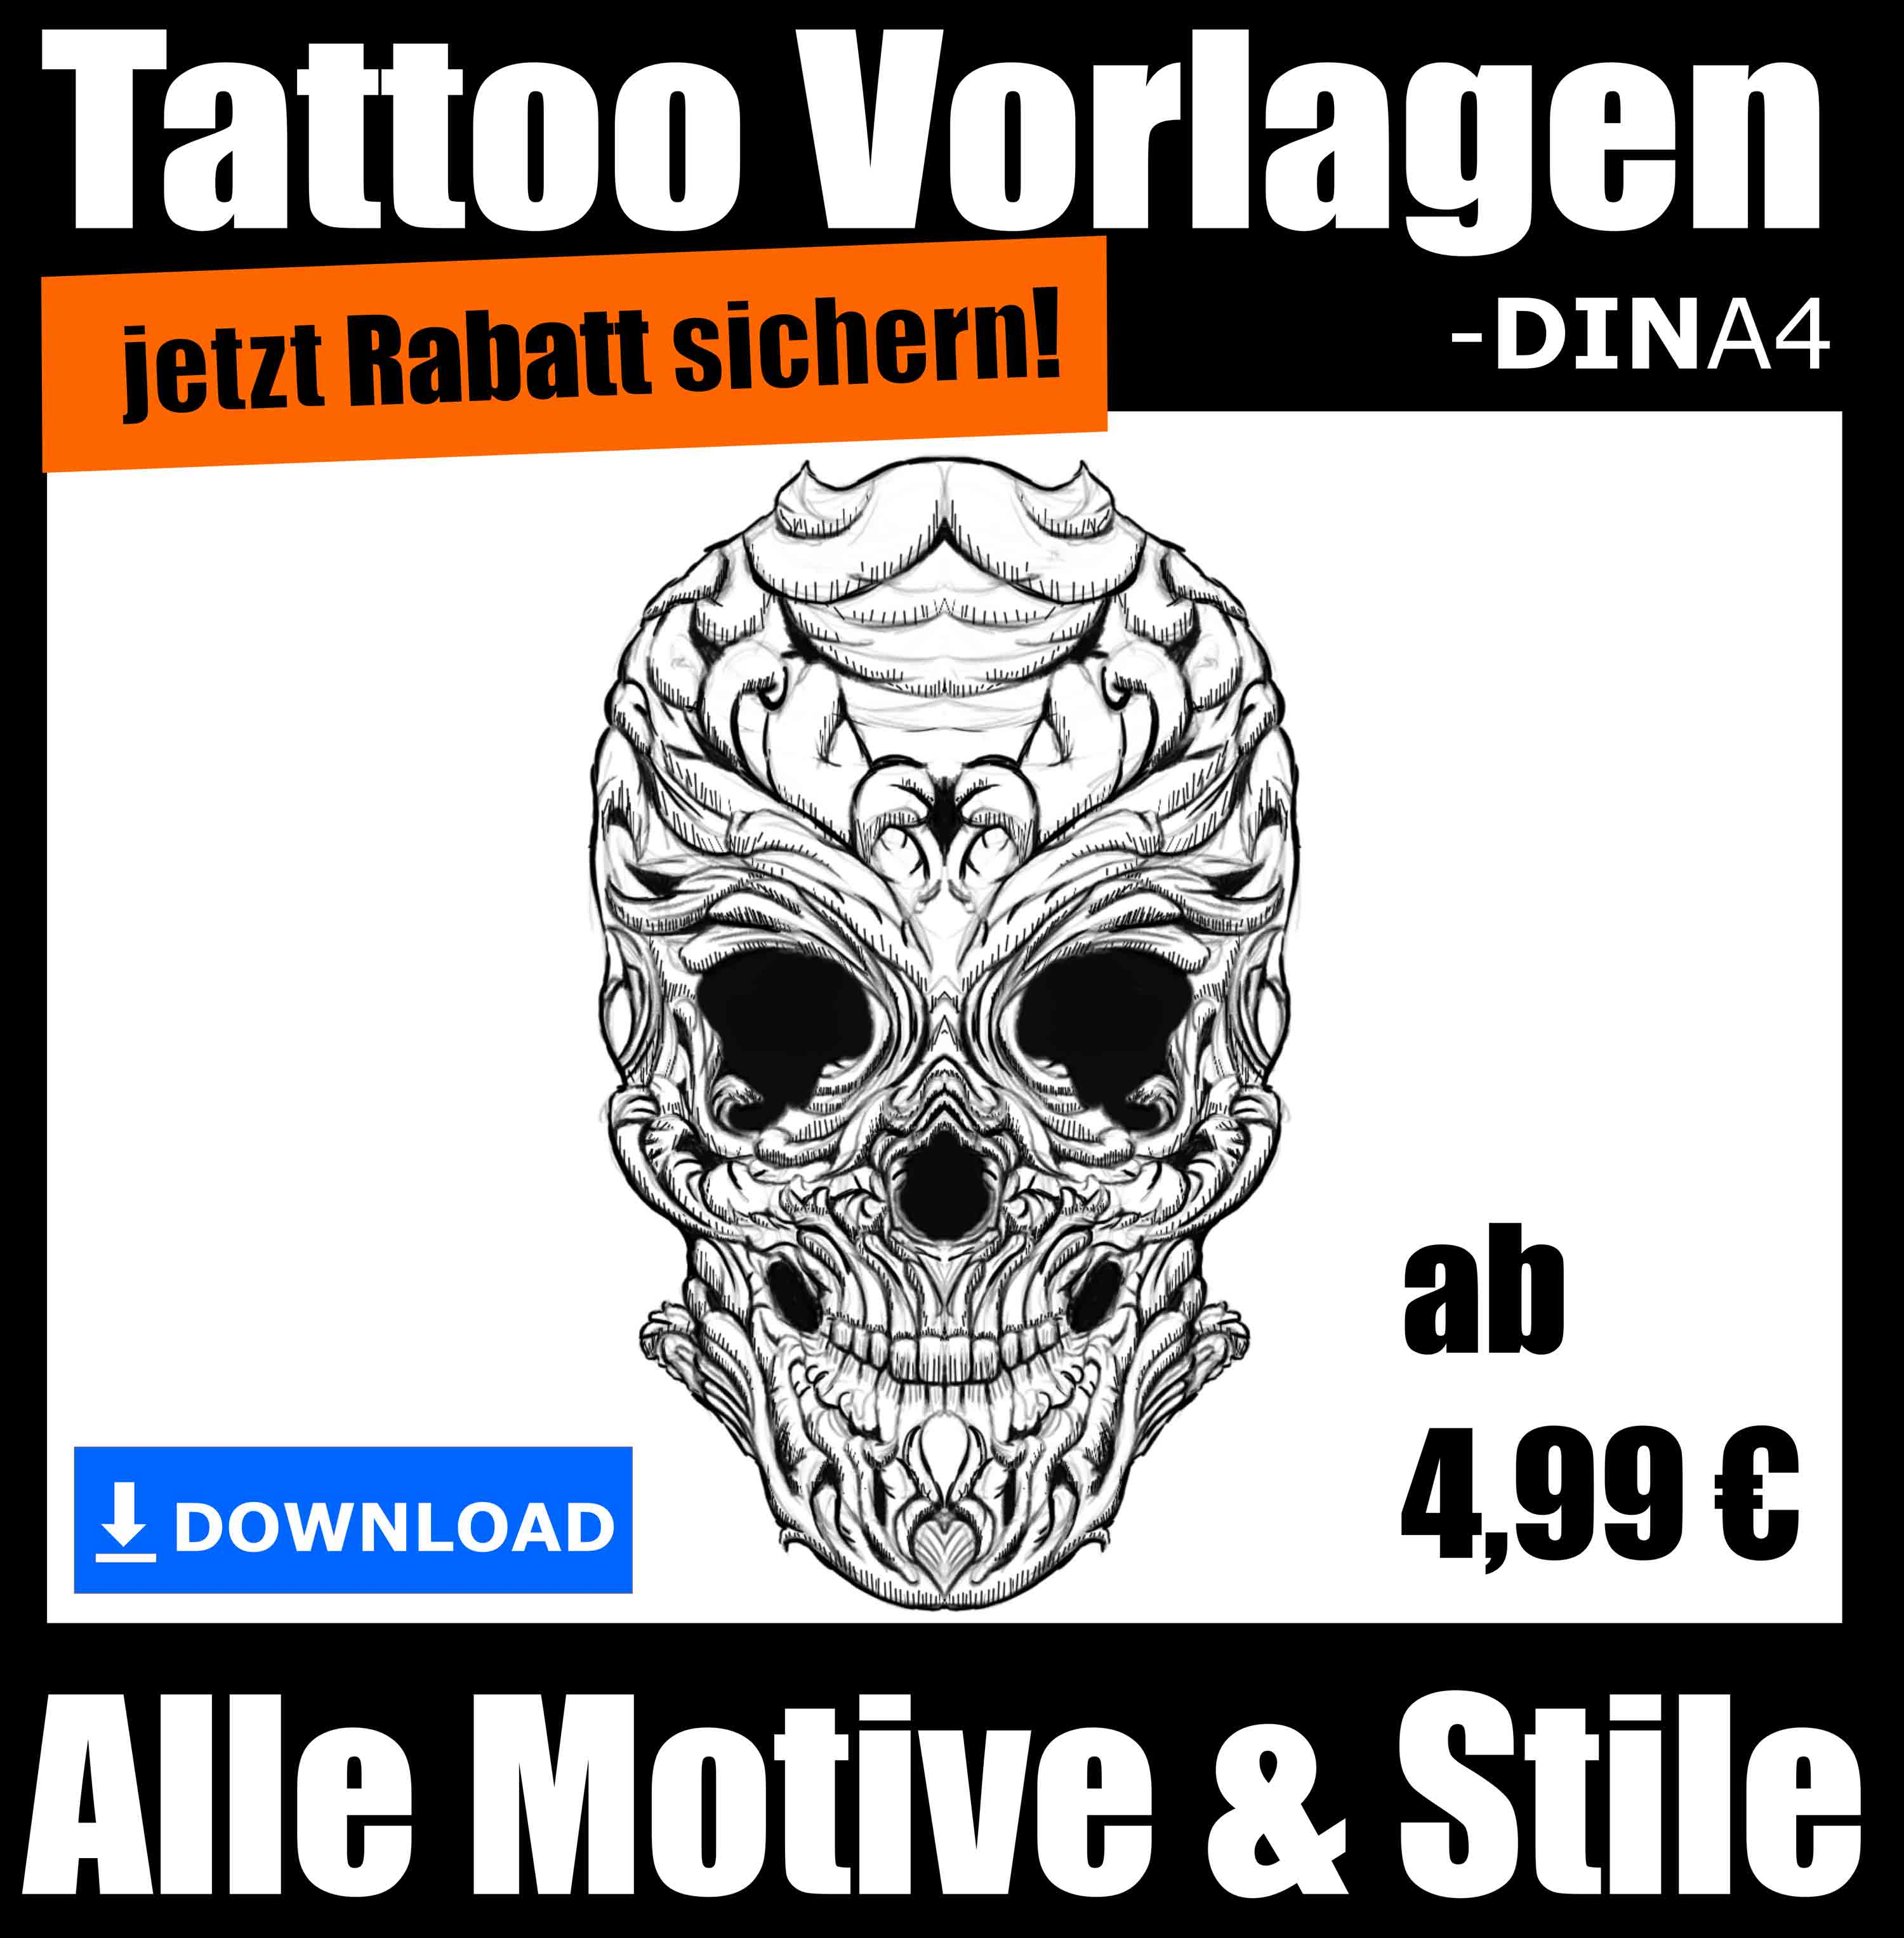 Tattoo Vorlagen